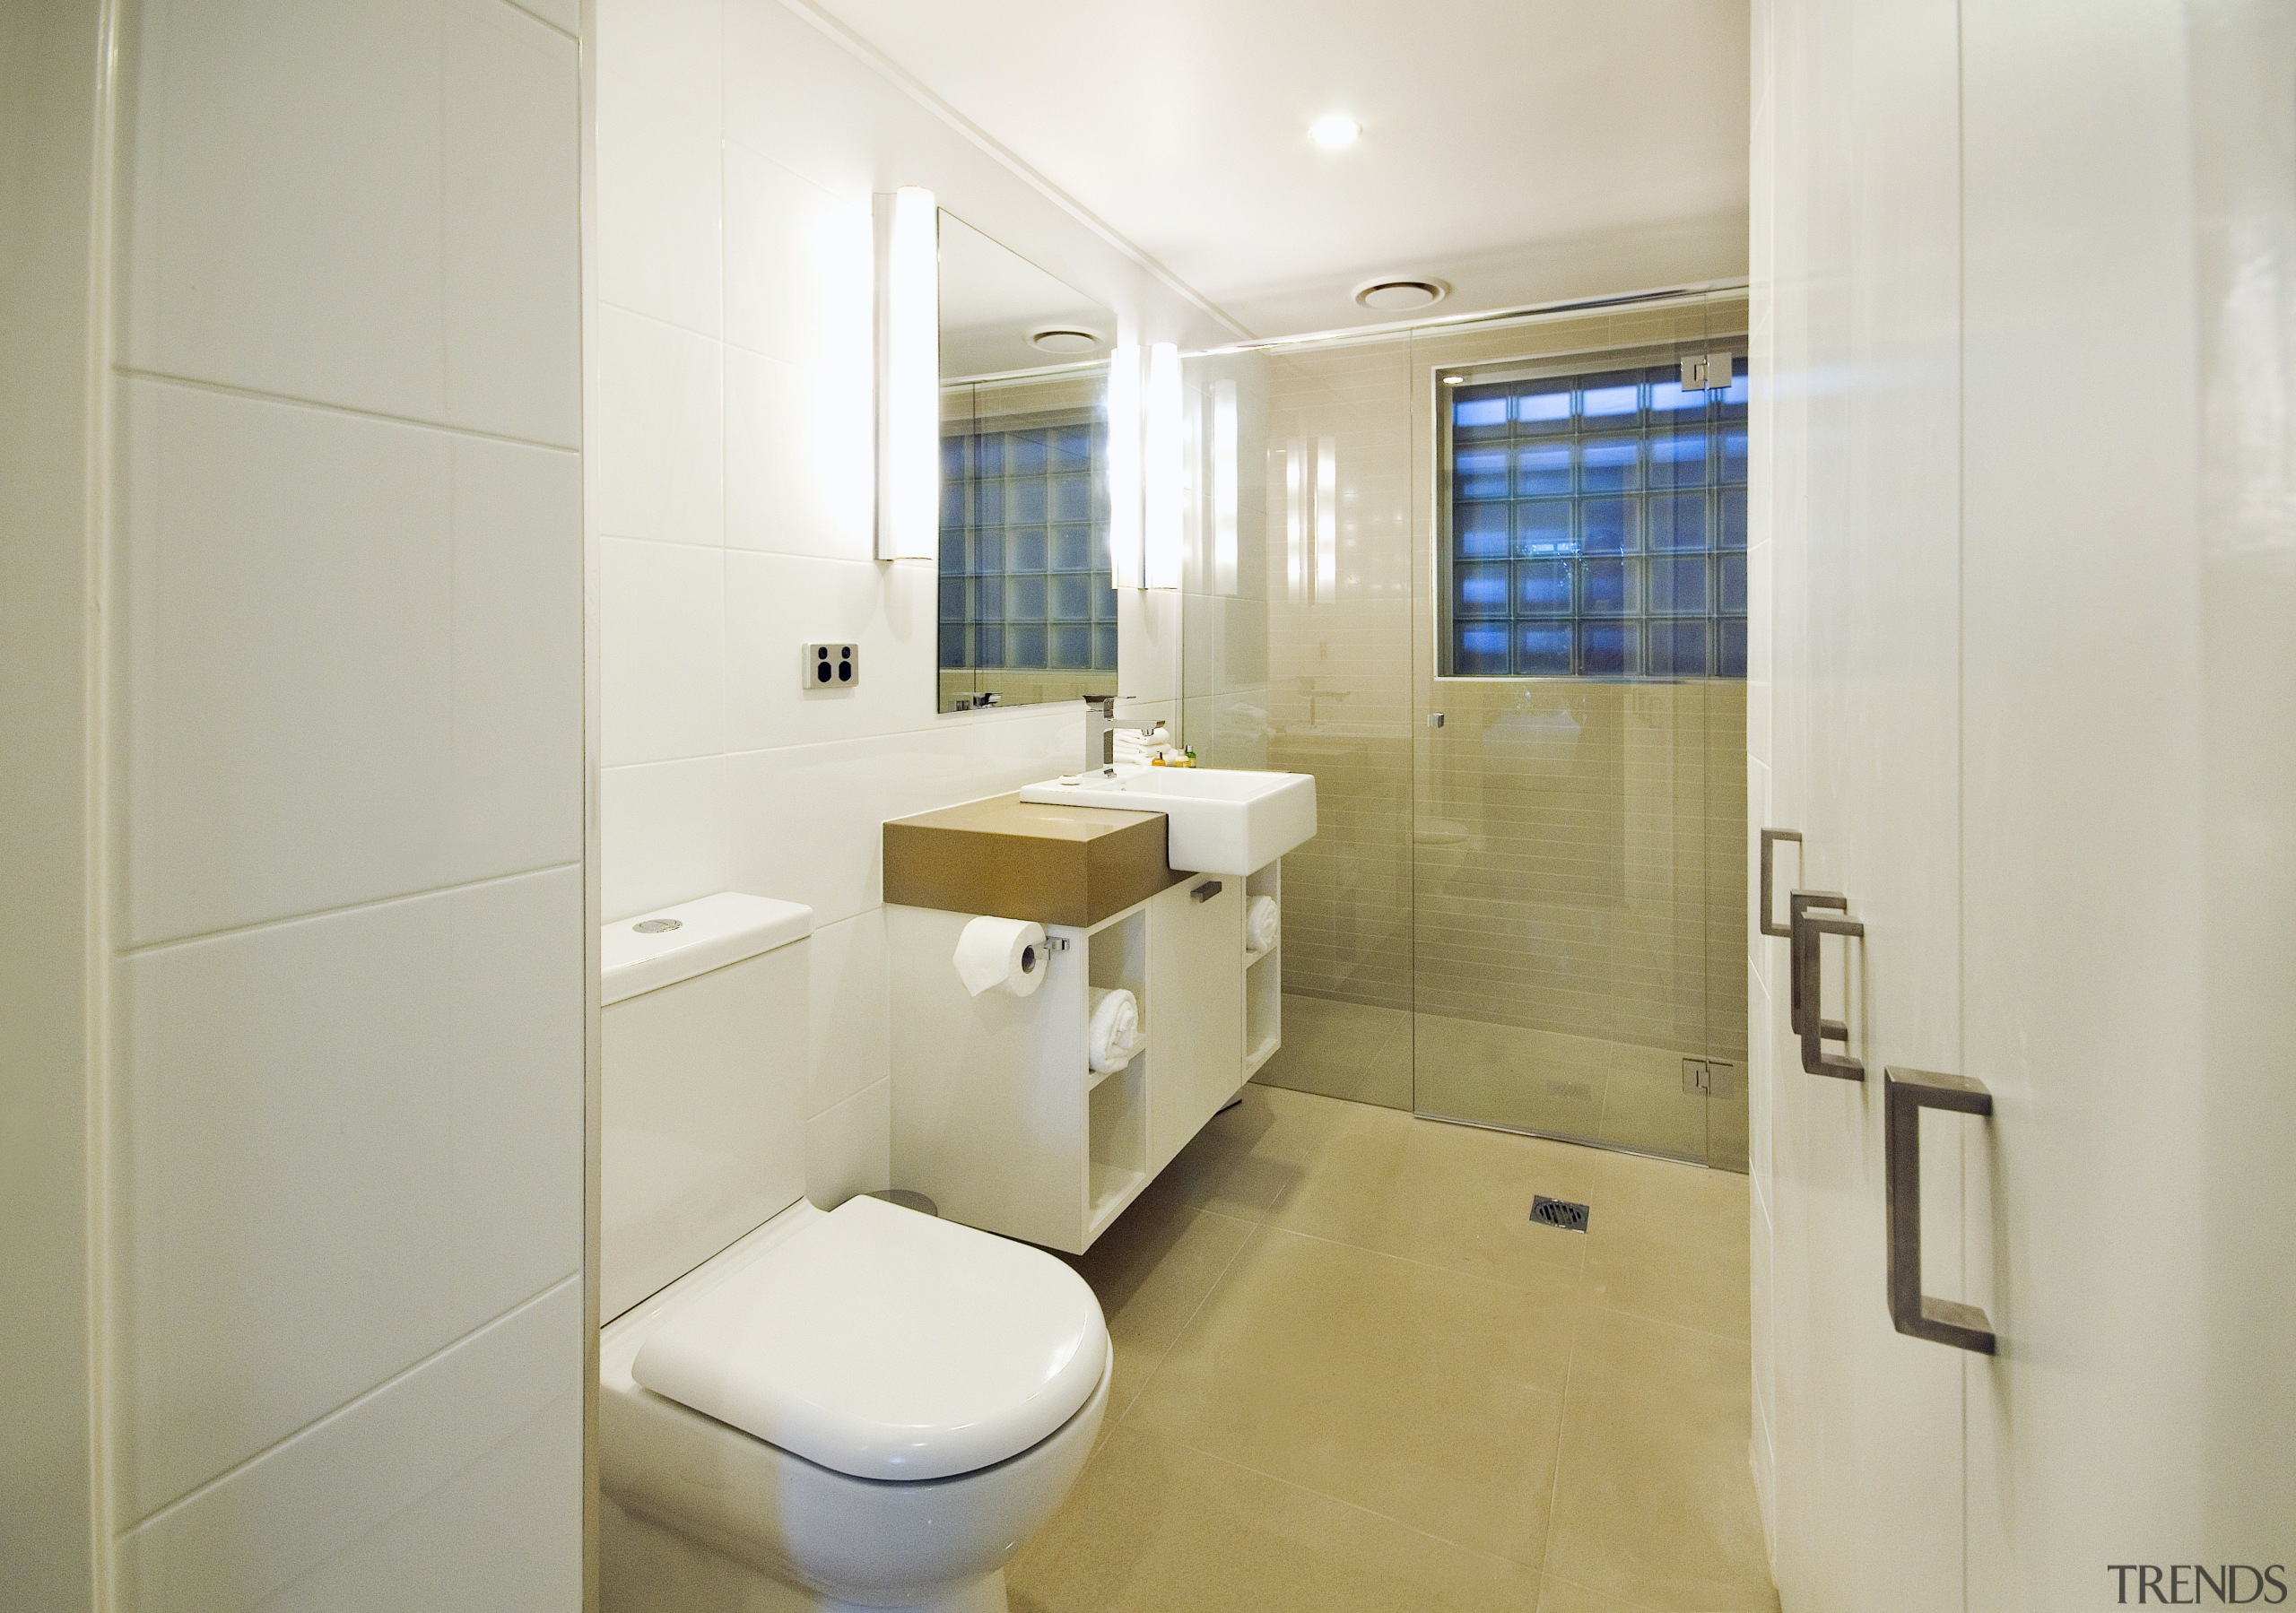 Hotel refurbishment with eco-friendly kitchen and bathroom fixtures bathroom, home, interior design, property, real estate, room, gray